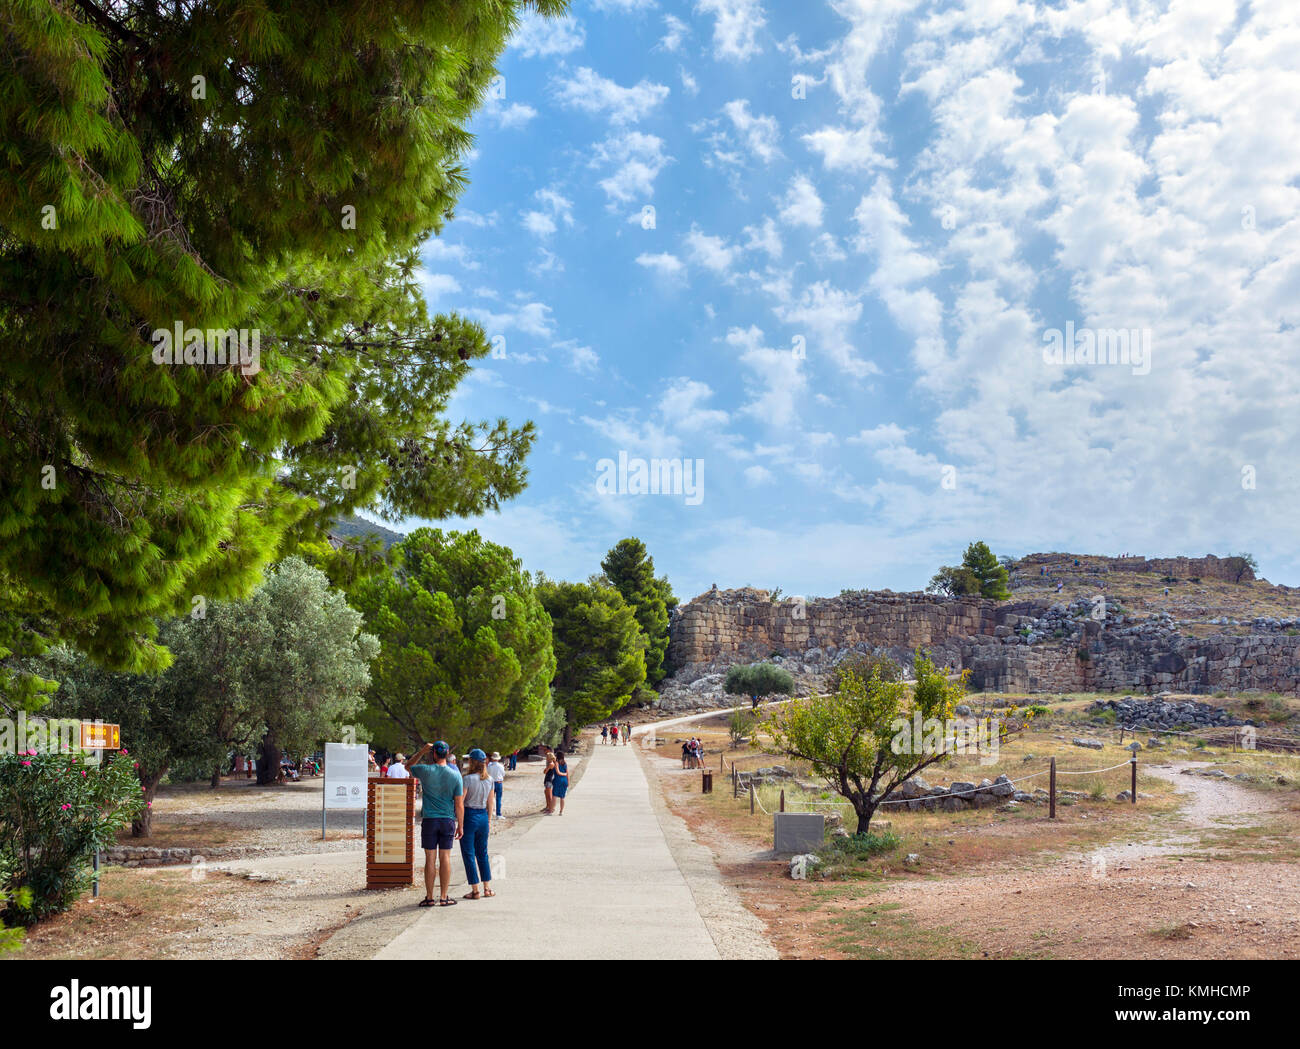 Entrance to the archaeological site at Mycenae, Mikines, Peloponnese, Greece - Stock Image